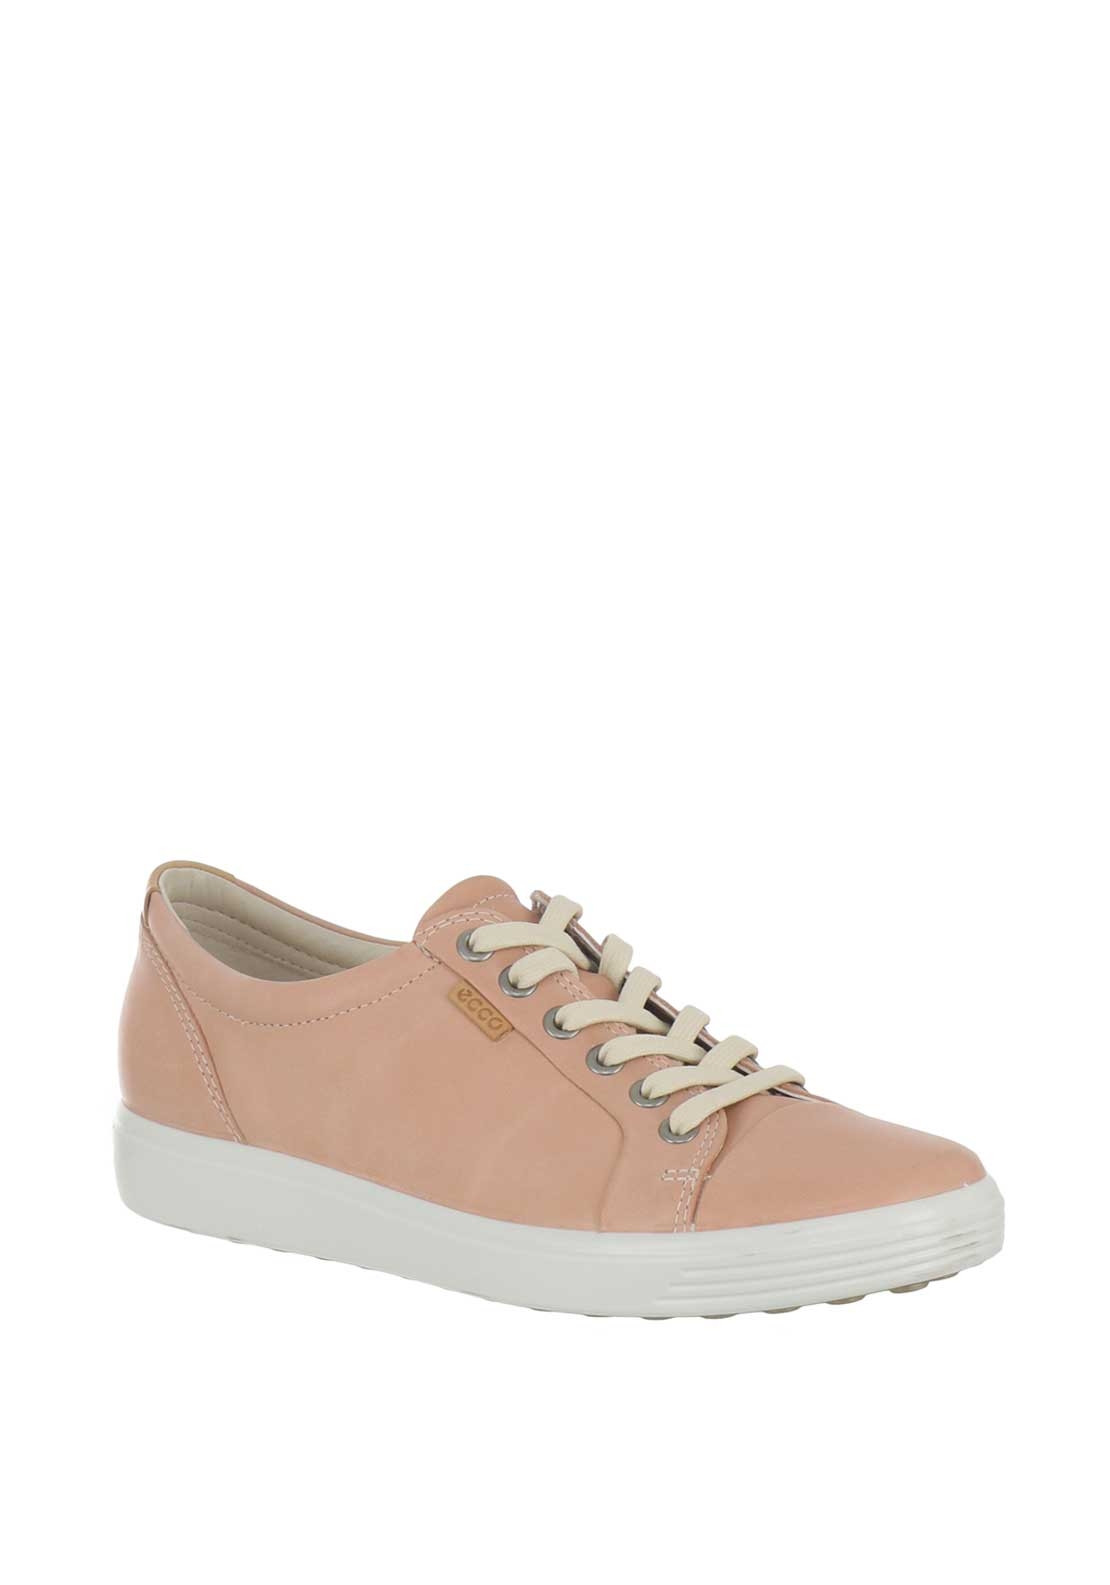 69f657743eb07 Ecco Womens Soft 7 Leather Trainers, Pink. Be the first to review this  product